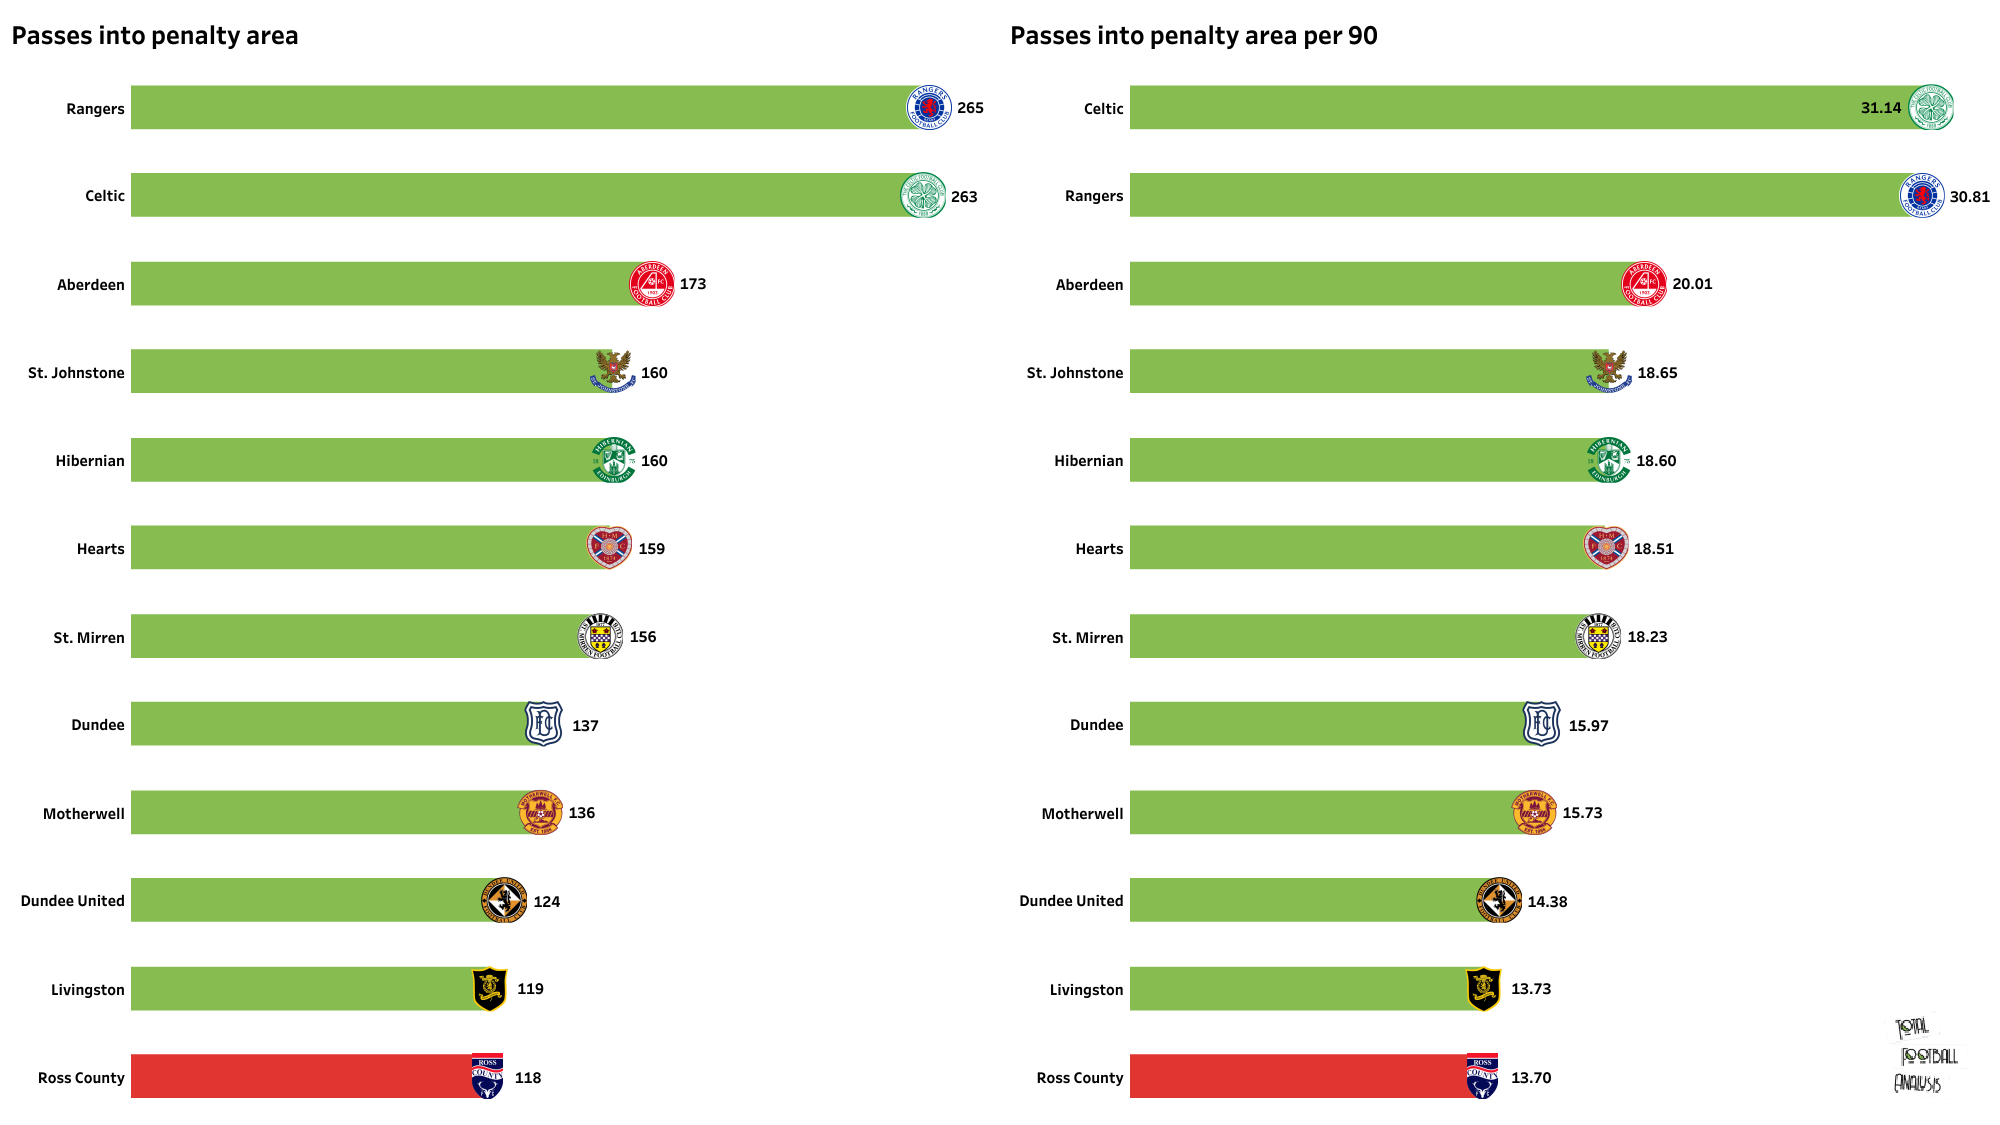 Ross County 2021/22 data stats